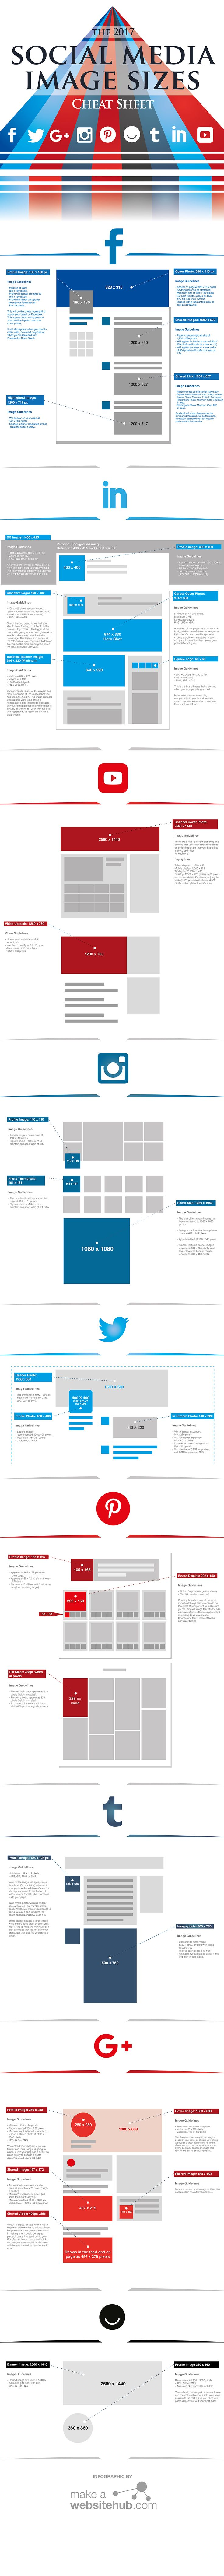 Social Media Image Sizes - An up to date reference for image sizes on all the popular social media websites. Source: makeawebsitehub.com